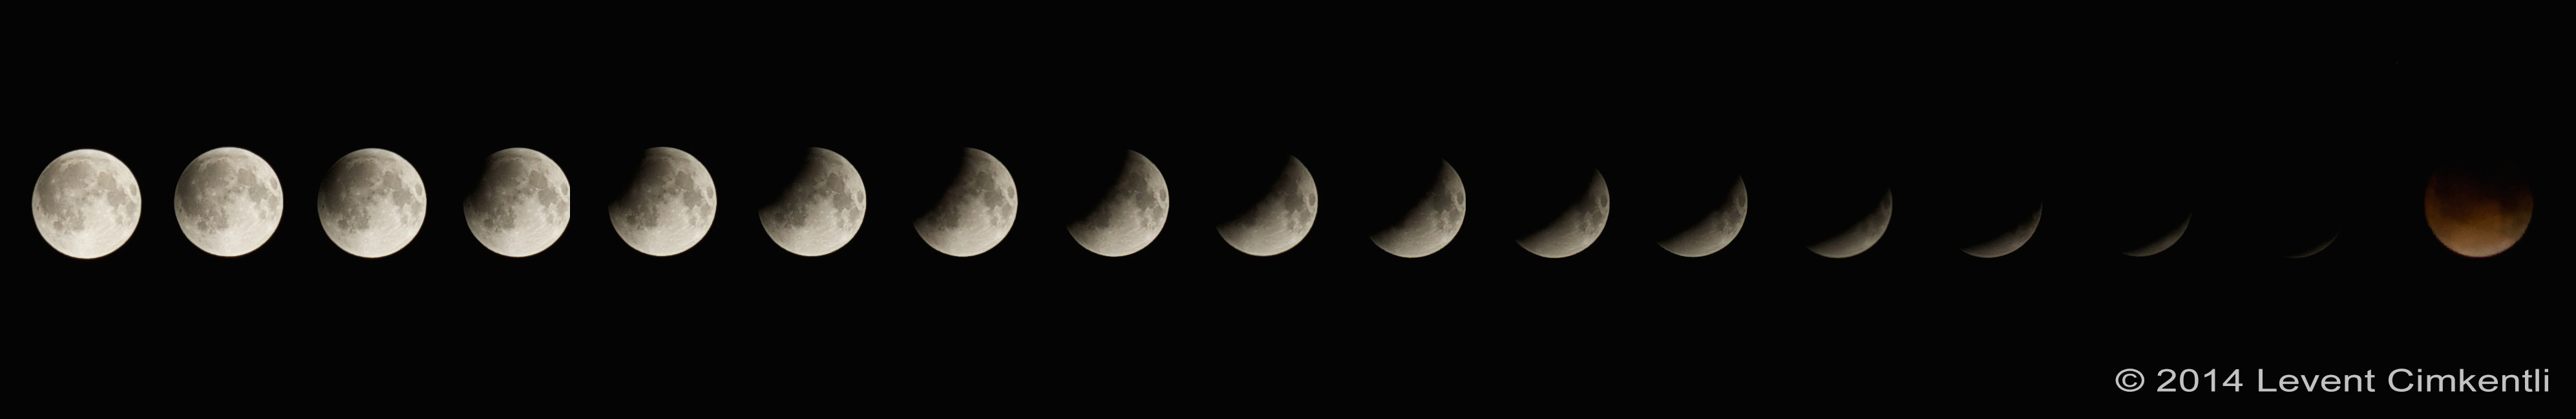 Total Lunar Eclipse of April 15, 2014 Series: Levent Cimkentli